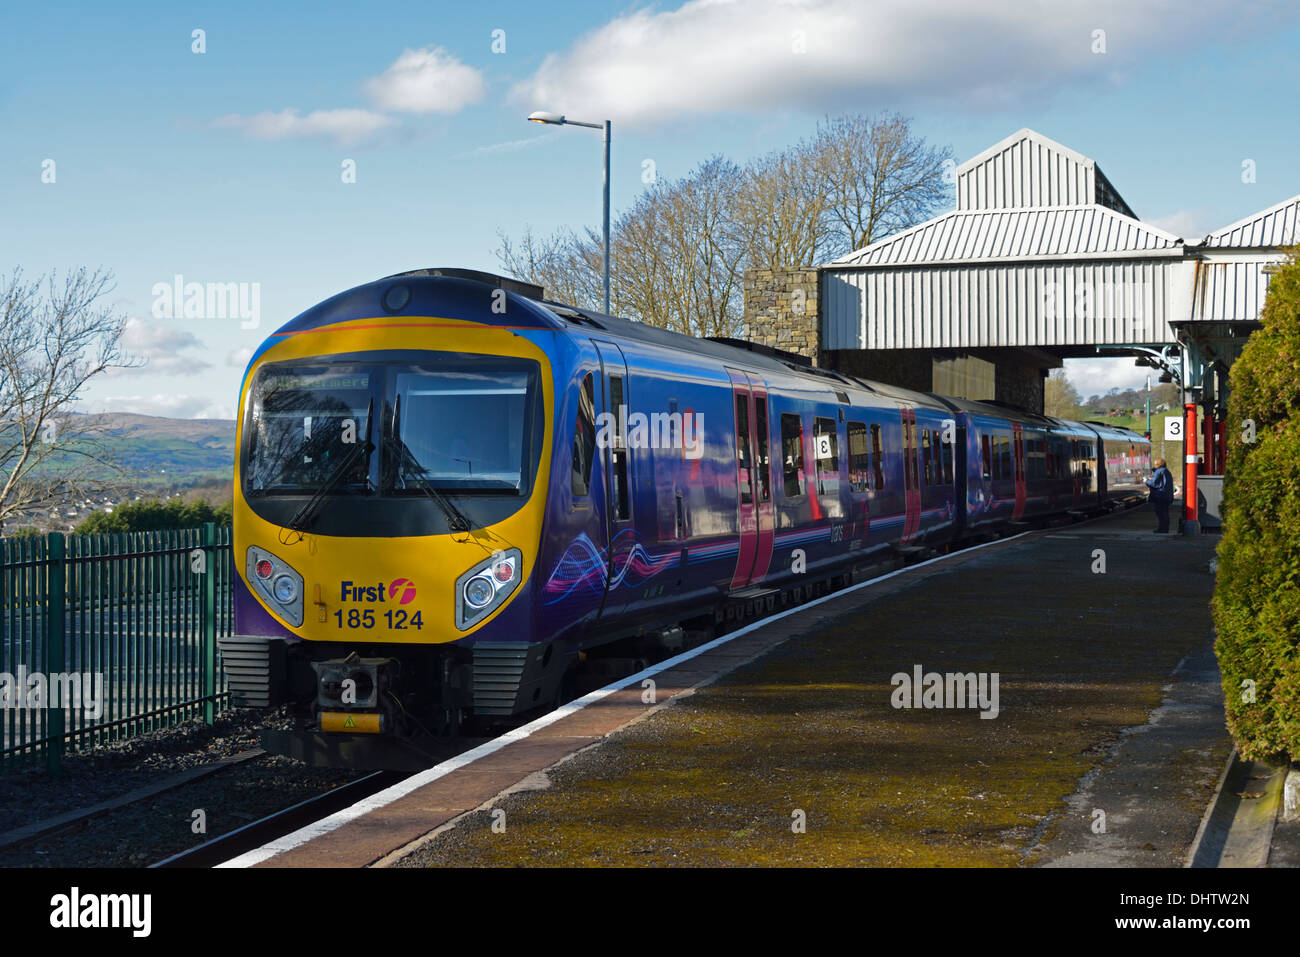 First Transpennine Express Class 185 at Oxenholme station. Cumbria, England, United Kingdom, Europe. - Stock Image